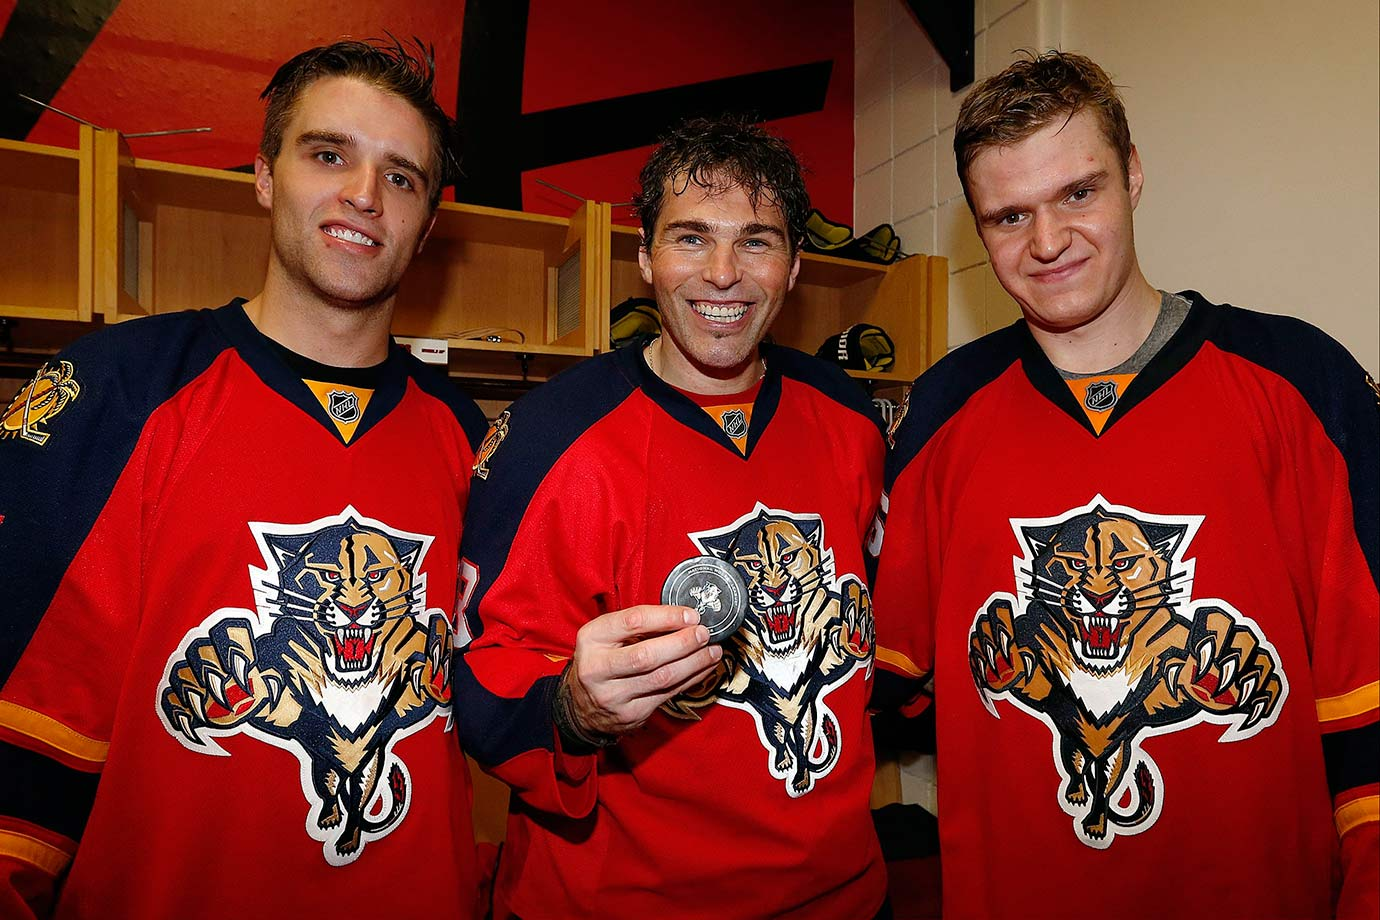 Seemed like hardly a game went by this year without some new milestone being set by ageless winger Jaromir Jagr (center), but two in particular stood out. On April 9, he assisted on Sasha Barkov's second period power play goal to record his 1,799th career point to move past Ron Francis into fourth on the all-time list. Then, on Dec. 20, he beat Ryan Miller for his 732nd career goal, vaulting him past Marcel Dionne into fourth place on that list.